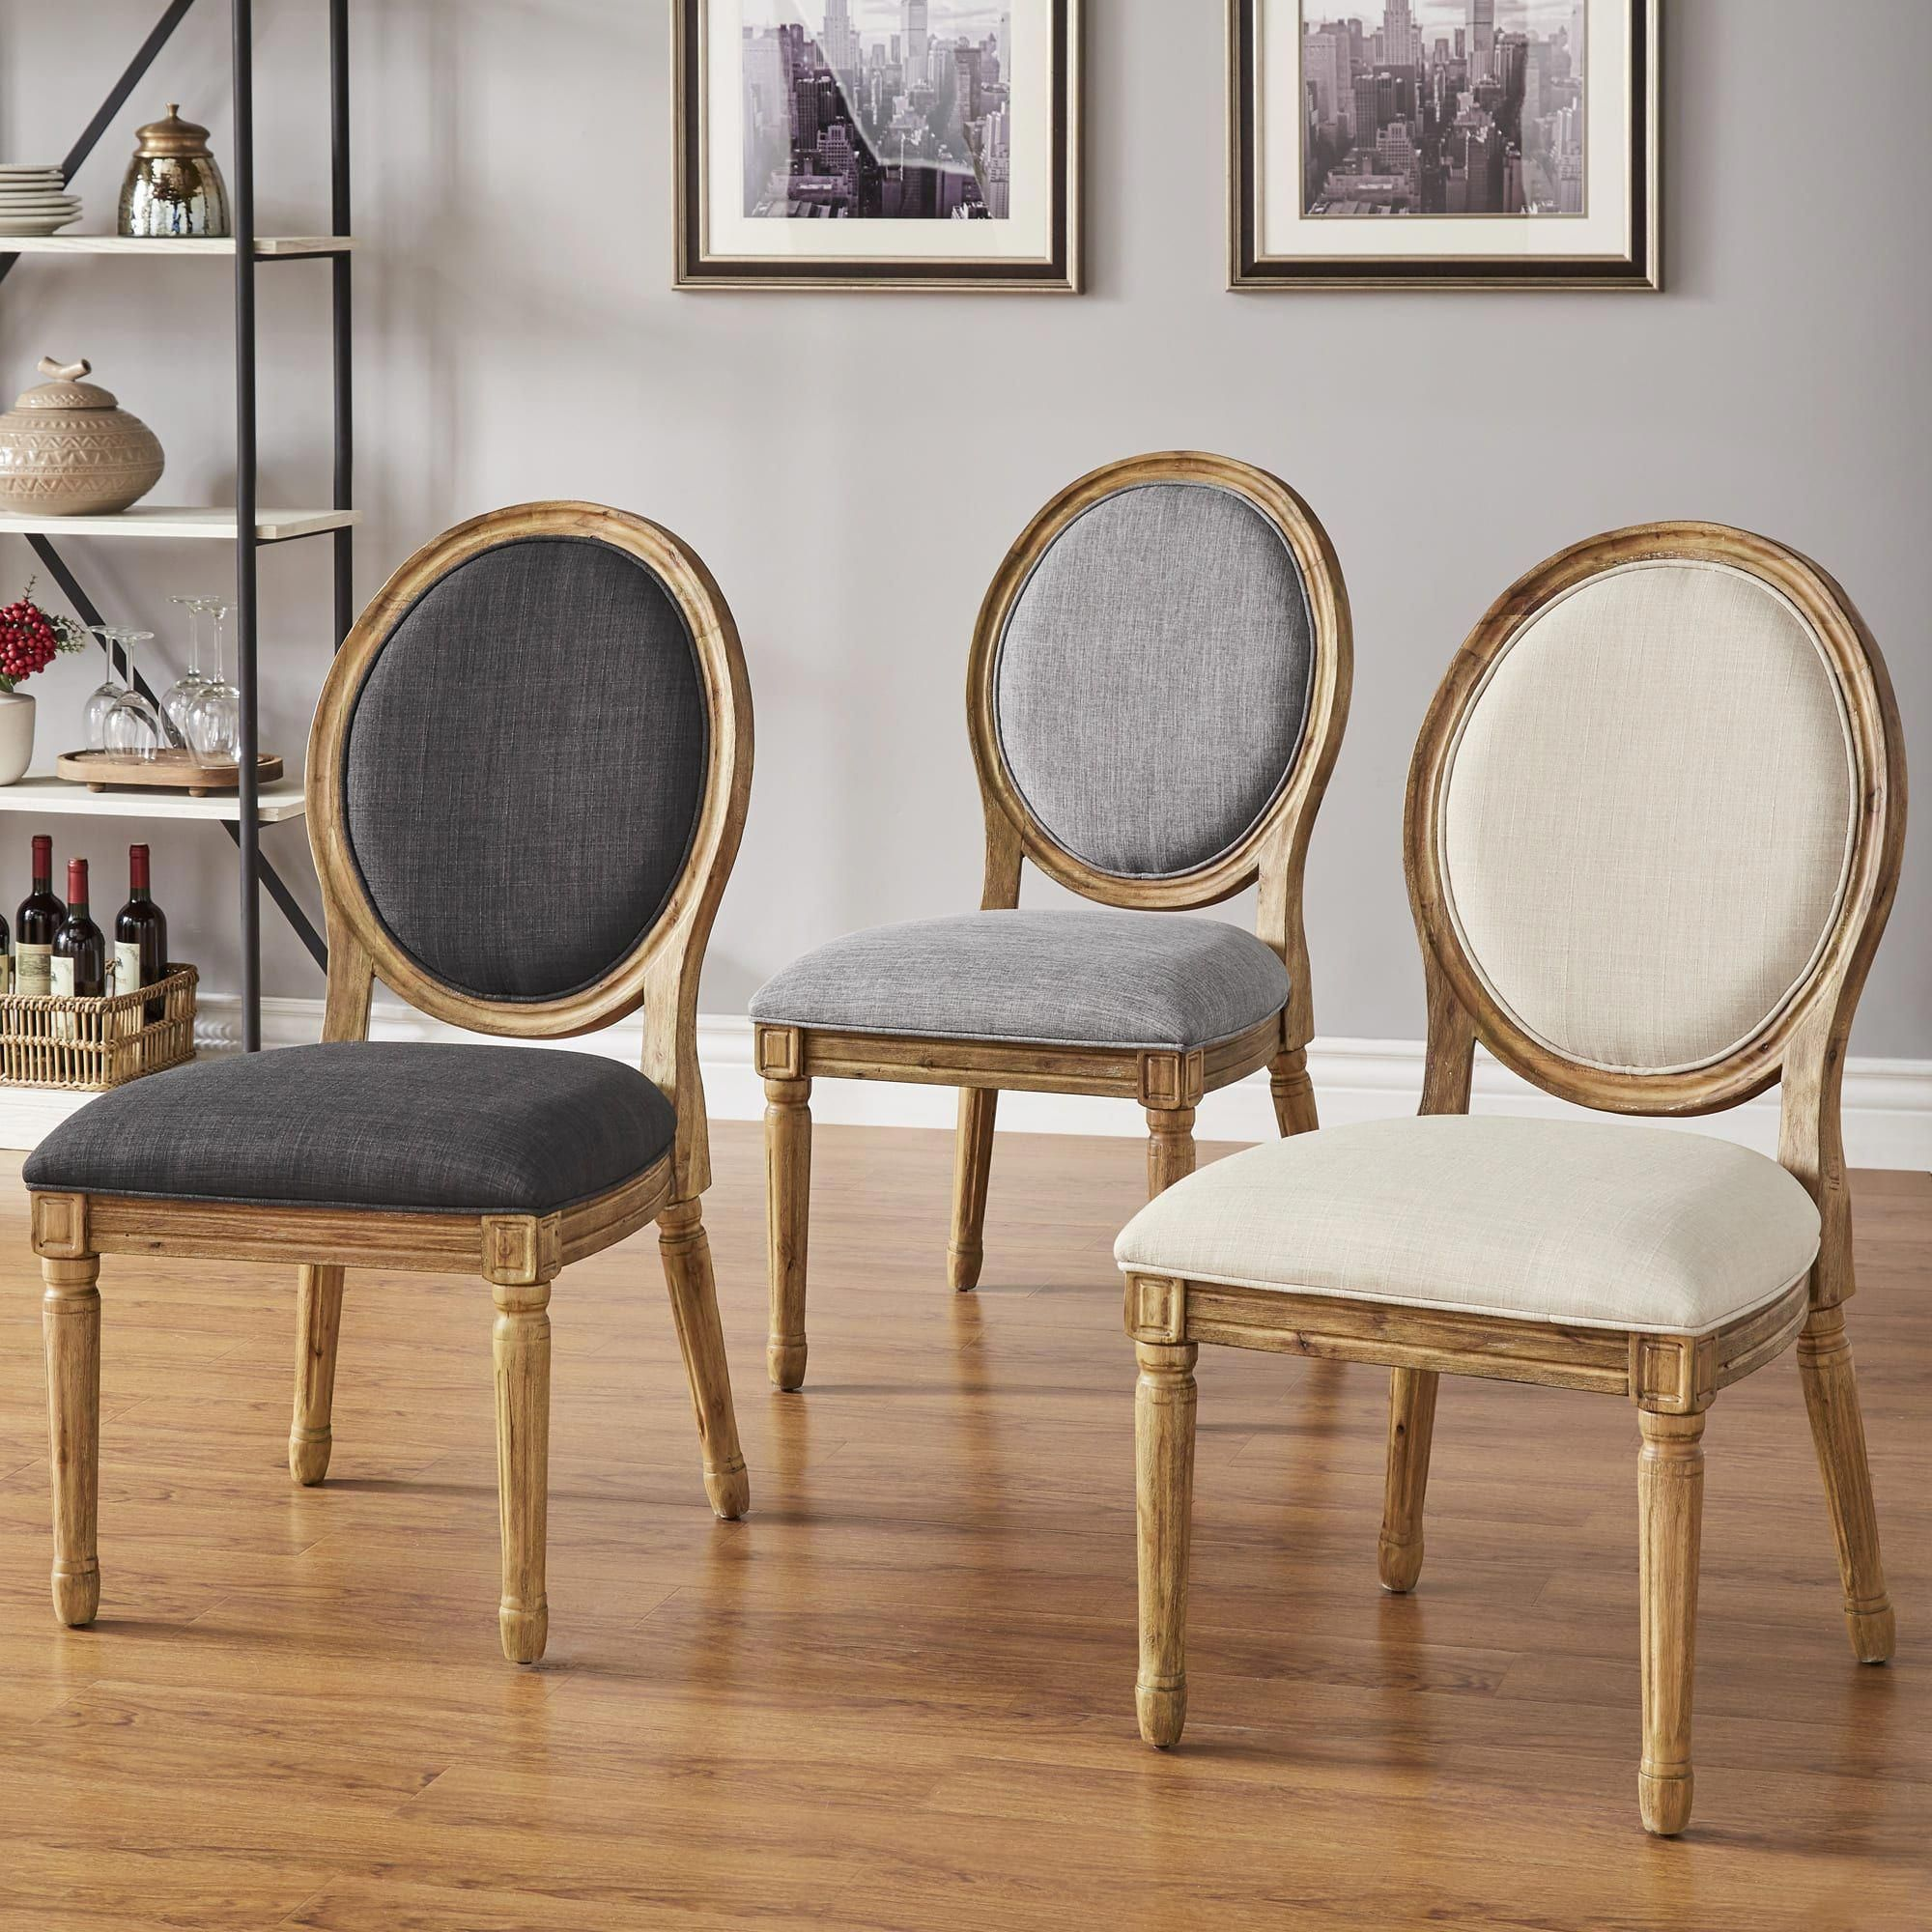 Buy Kitchen & Dining Room Chairs Online at Overstock | Our Best Dining Room & Bar Furniture Deals